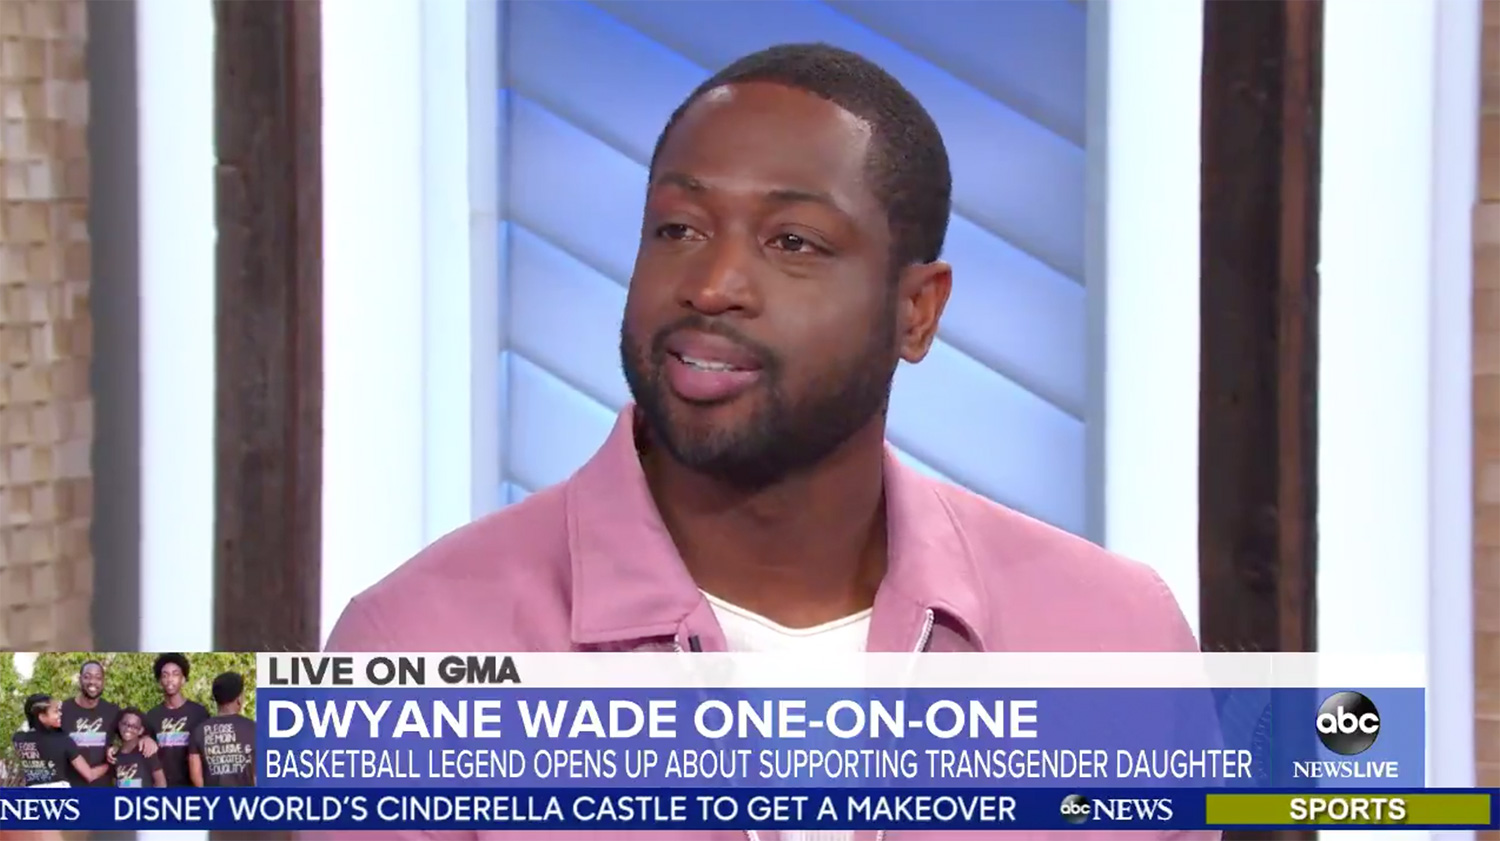 Dwyane Wade Says 12-Year-Old Daughter Zaya Knew 'for 9 Years' She Was Transgender